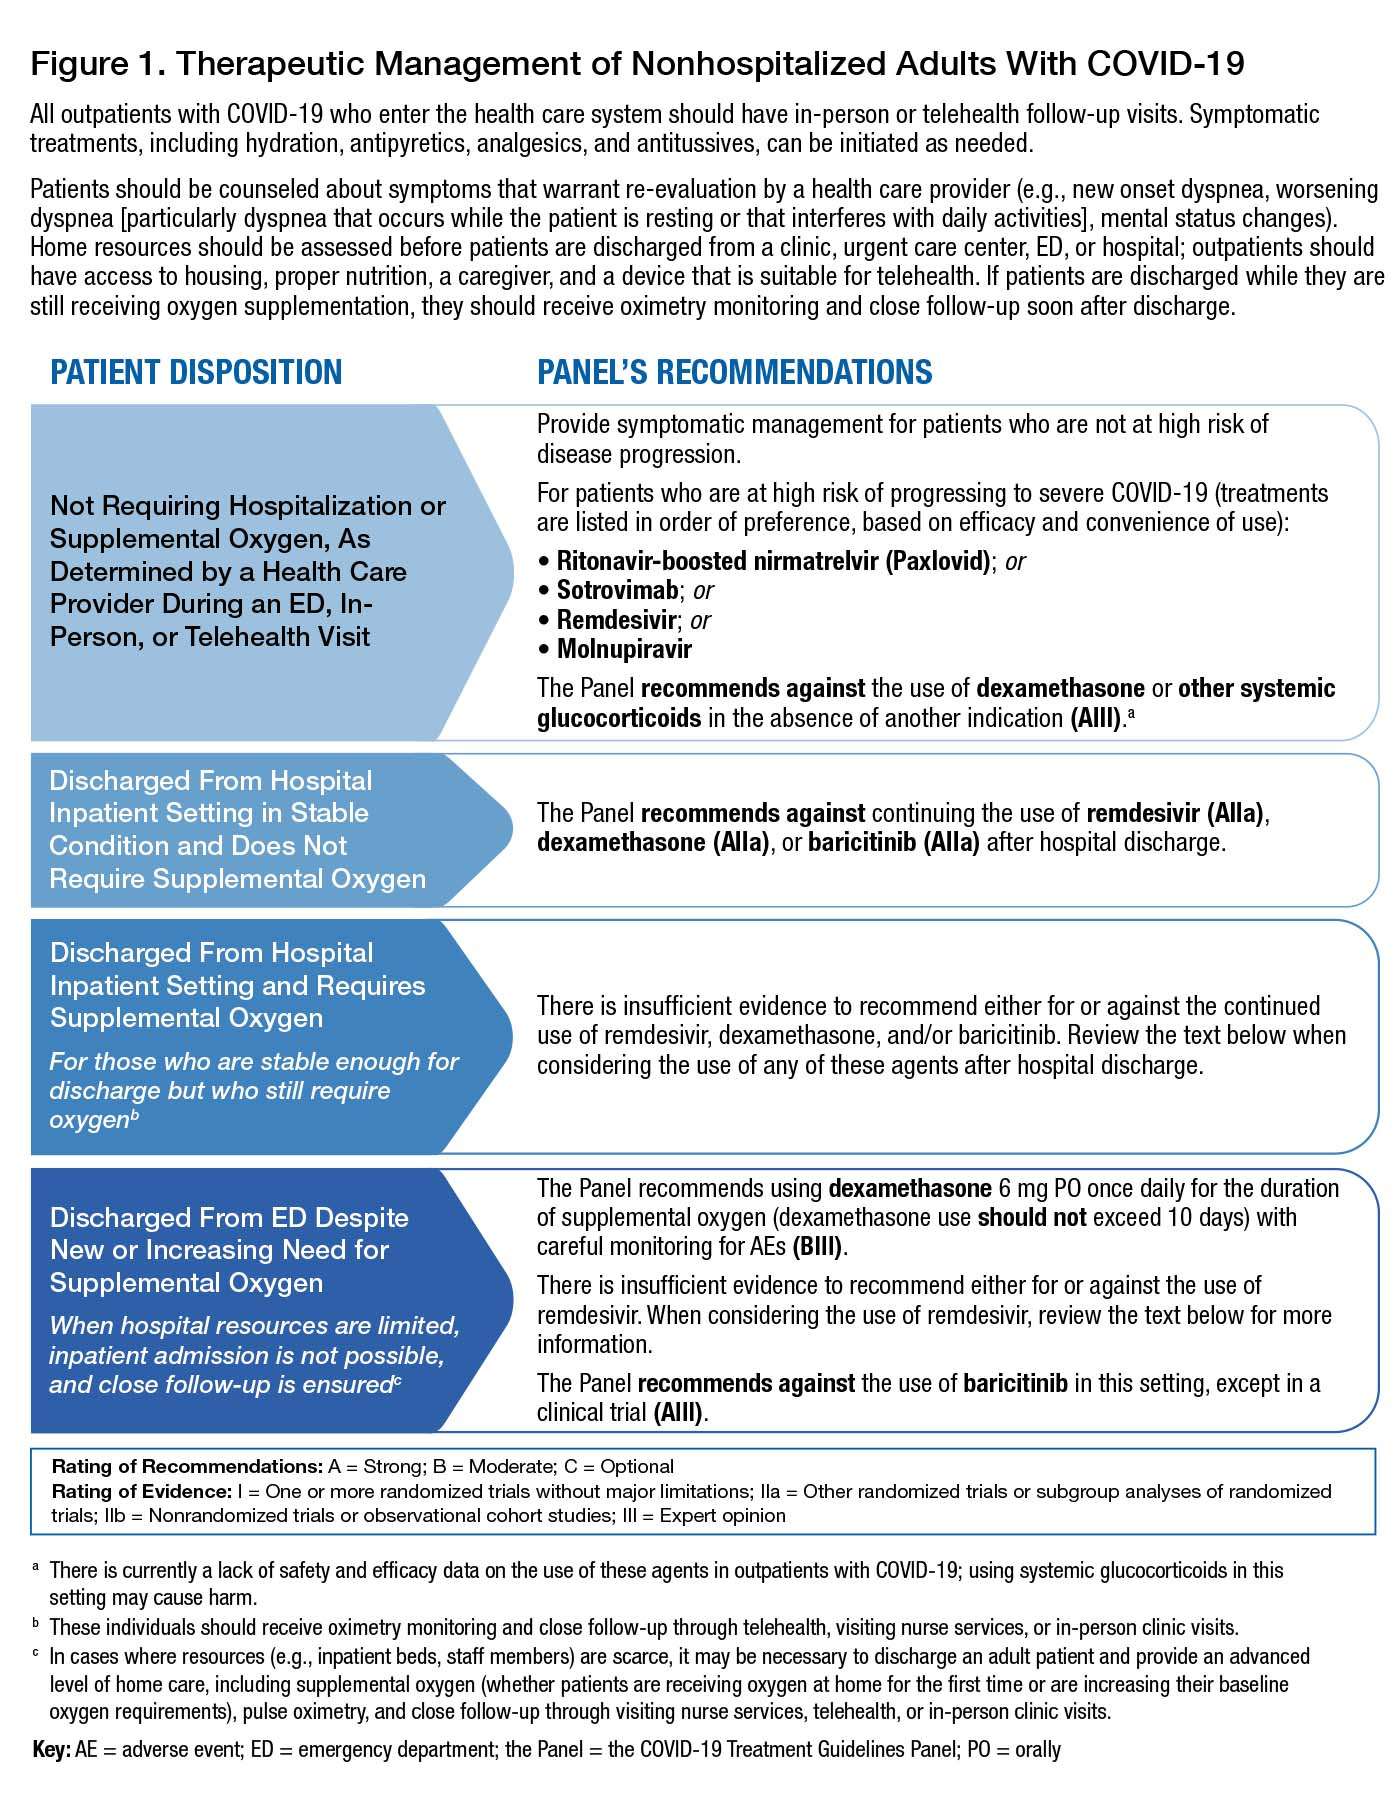 Therapeutic Management for Nonhospitalized Adults With COVID-19